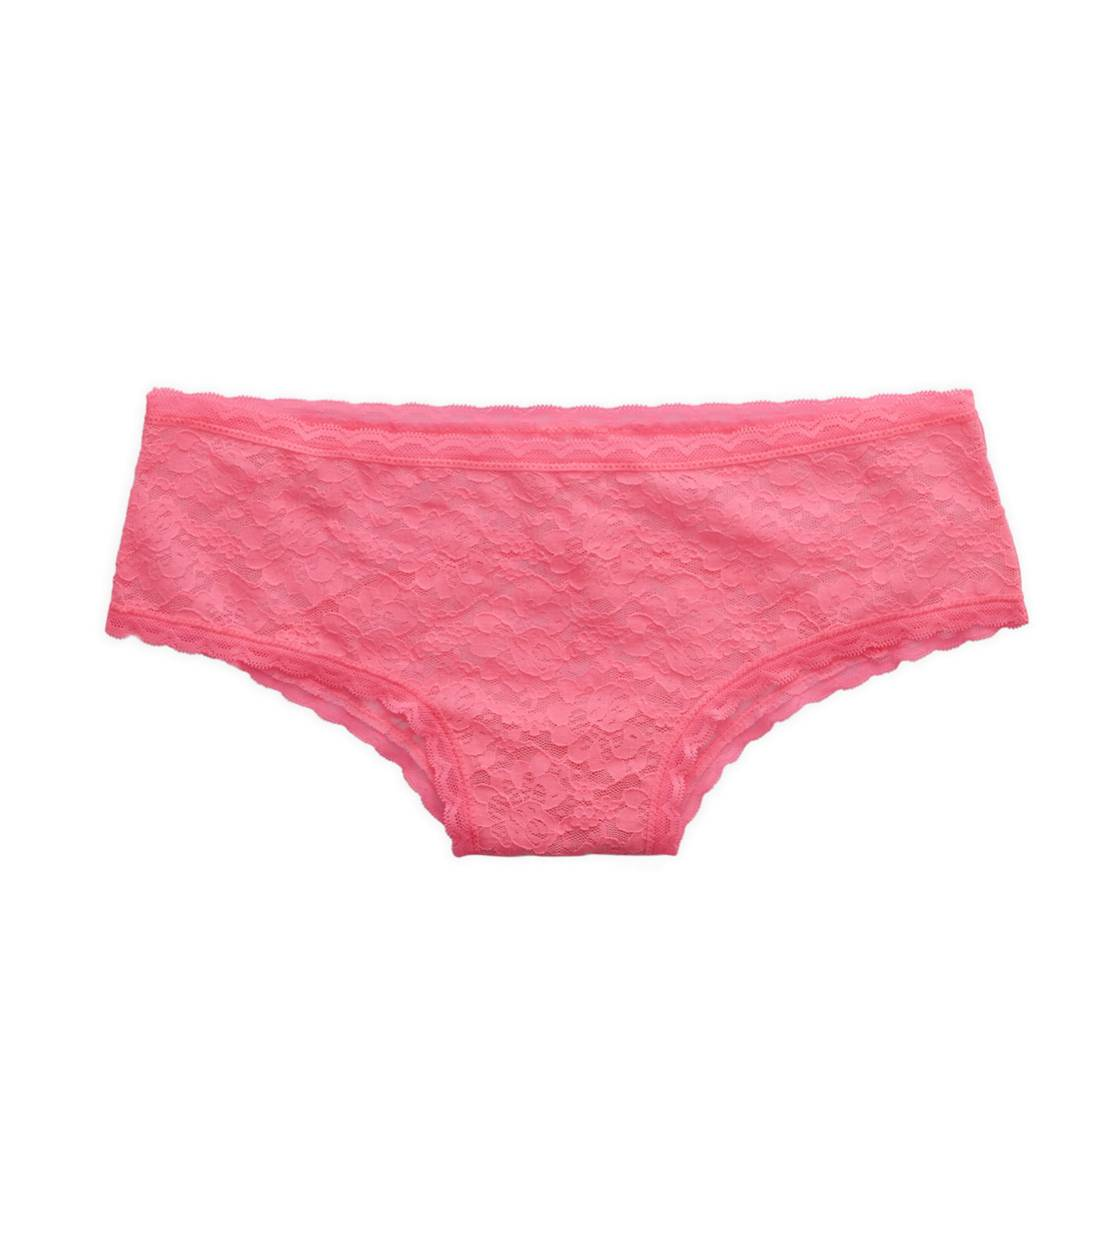 Dragon Fruit Aerie Vintage Lace & Mesh Cheeky